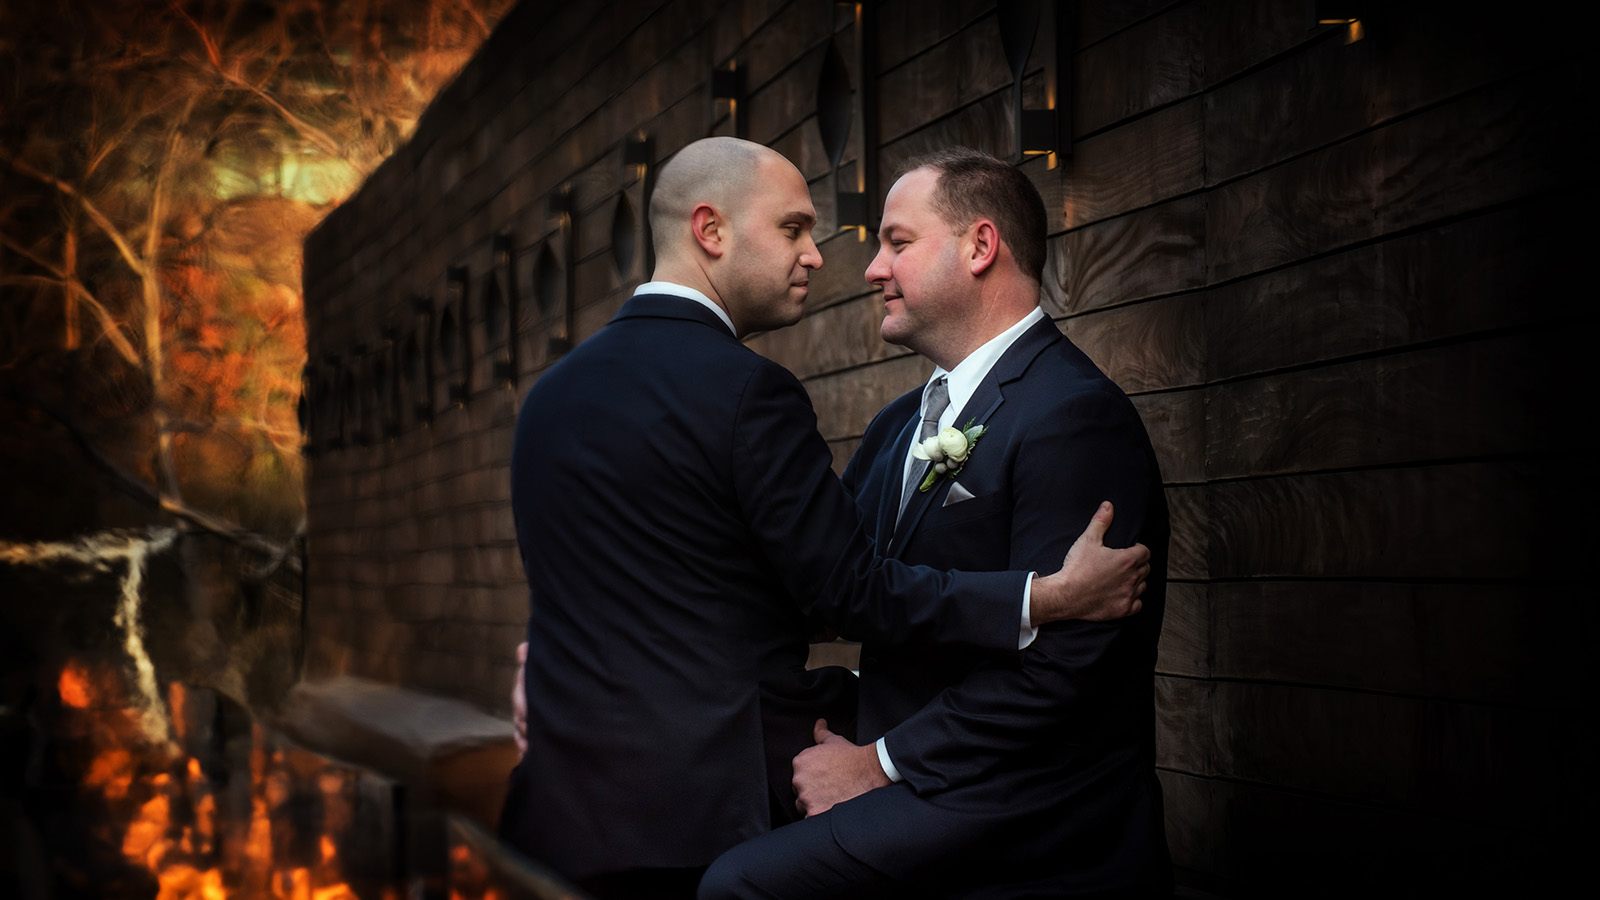 Gay Wedding Grooms Wedding Portrait